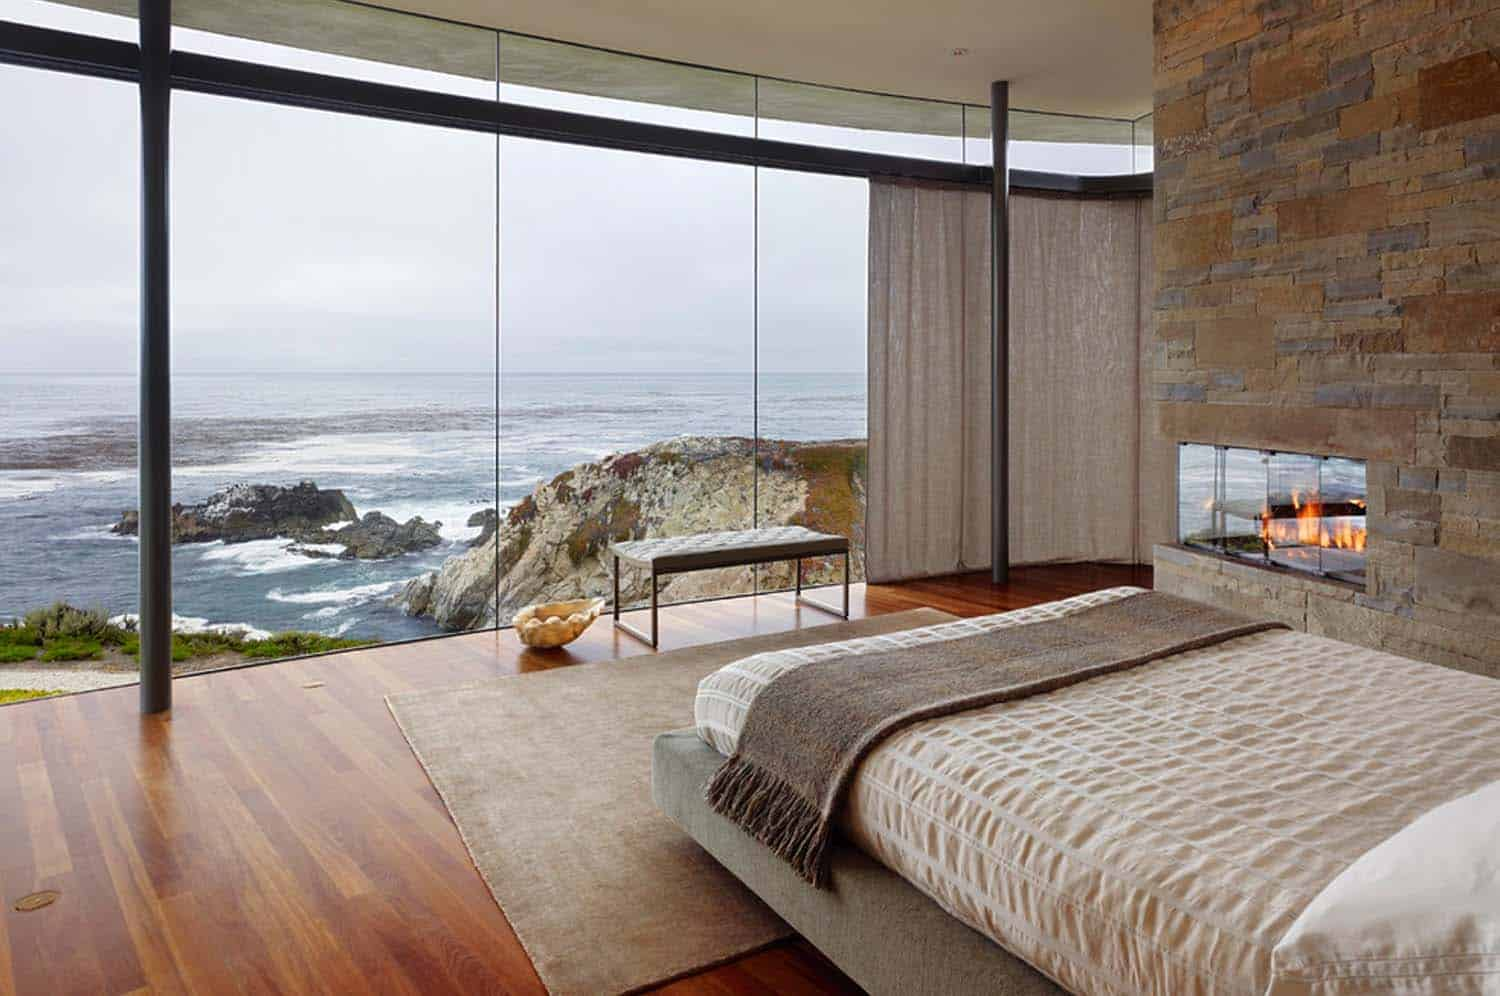 8 Sun-drenched bedrooms with mesmerizing ocean views